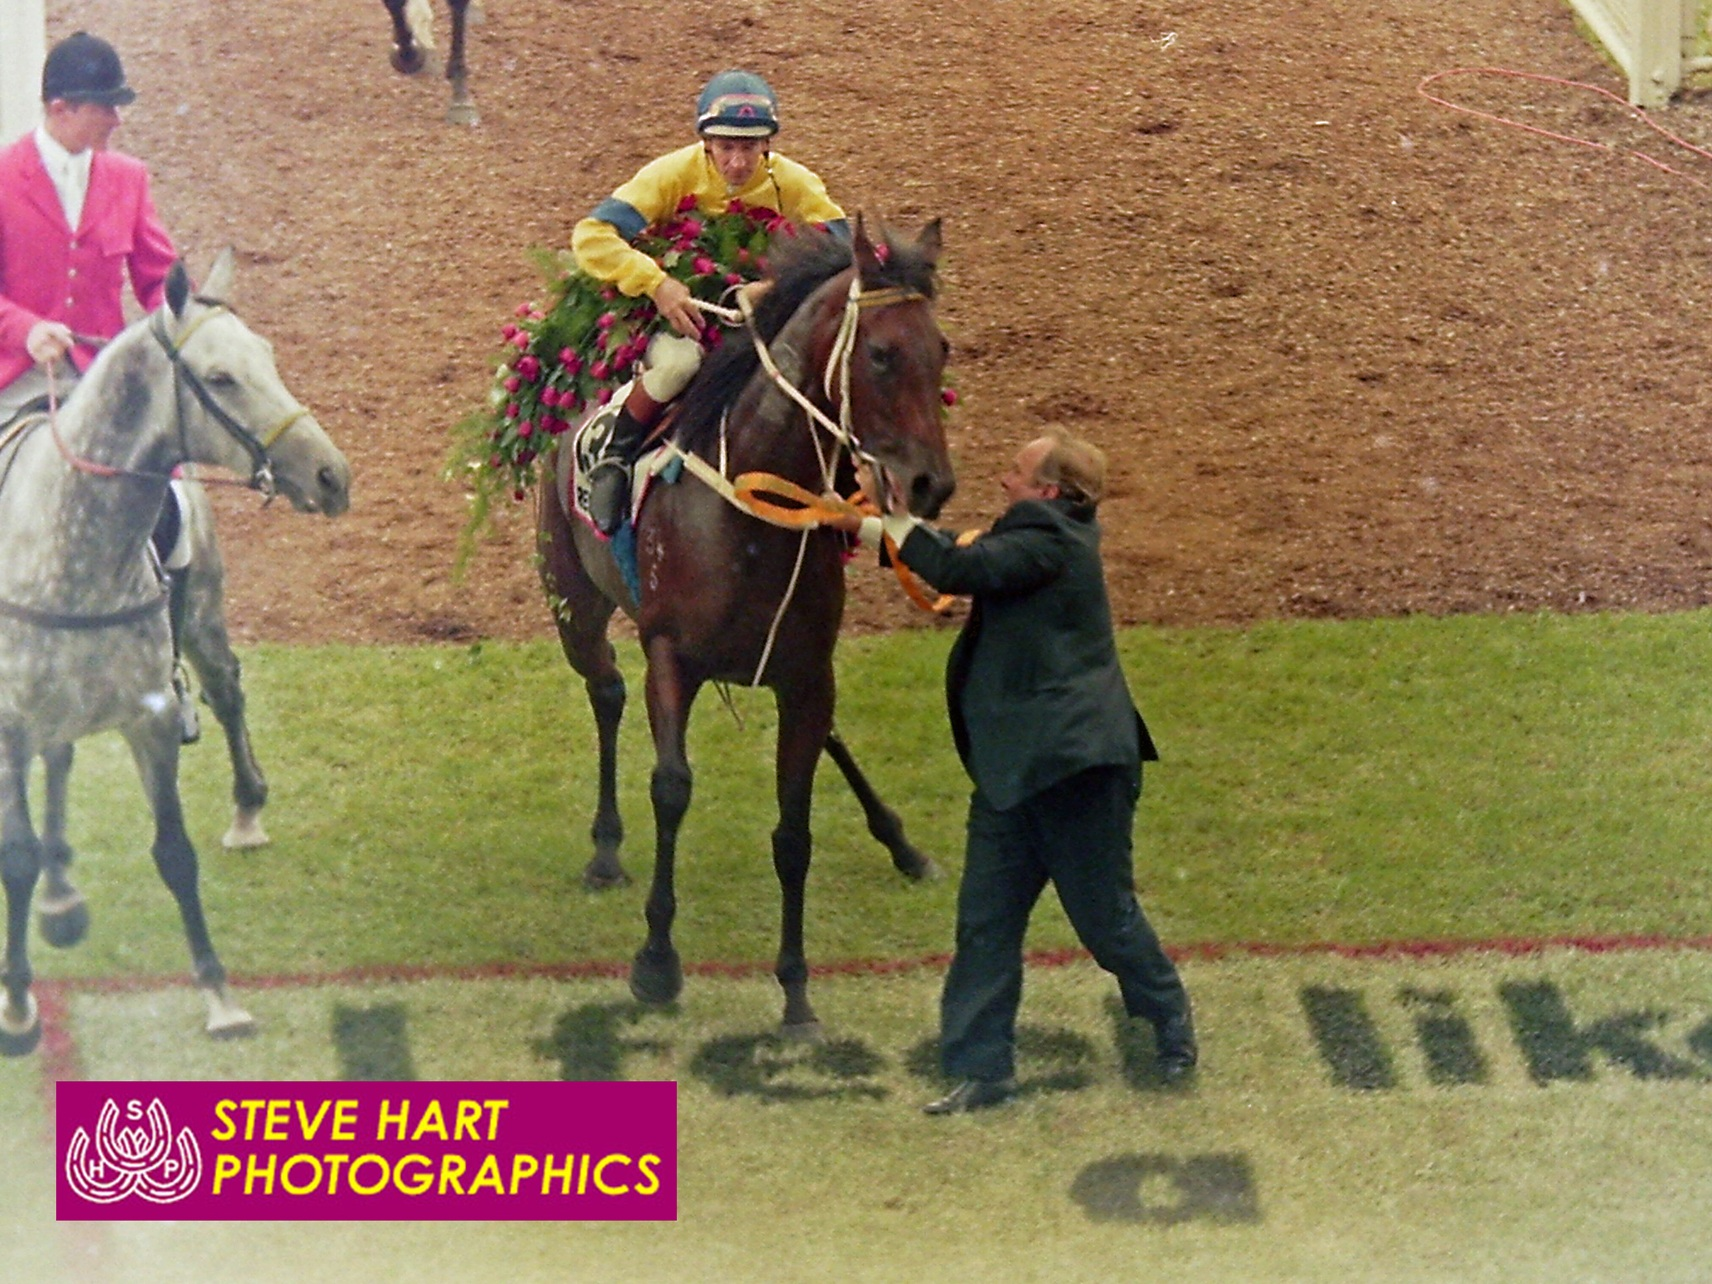 Image courtesy Steve Hart Photographics - The garland of roses caused a lot of trouble. Research looks like she's ready to plant one on the grey pony. Clarry's hanging on grimly.